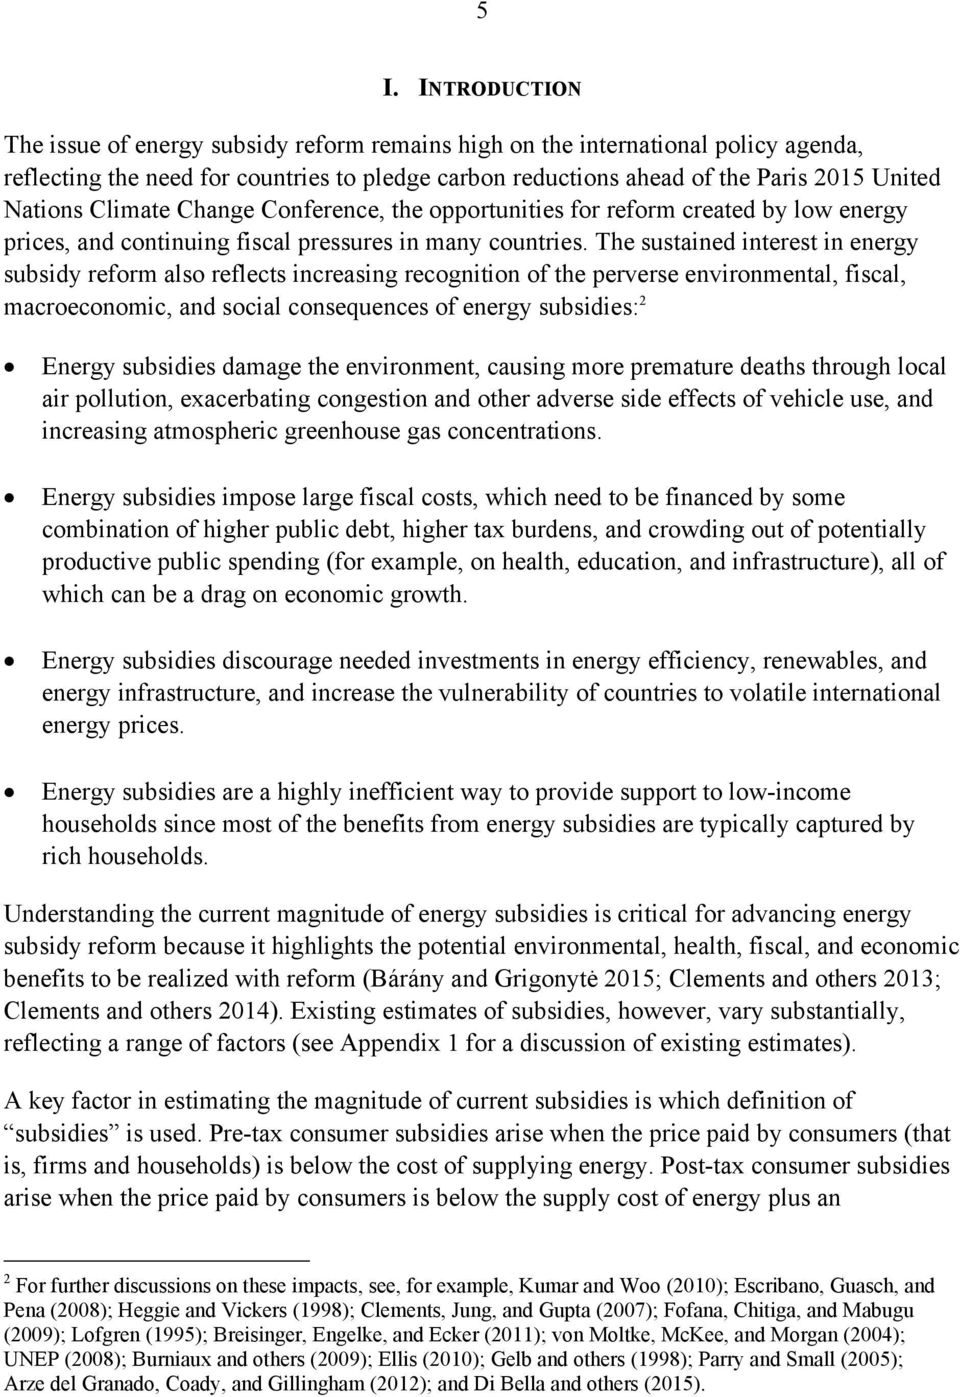 The sustained interest in energy subsidy reform also reflects increasing recognition of the perverse environmental, fiscal, macroeconomic, and social consequences of energy subsidies: 2 Energy